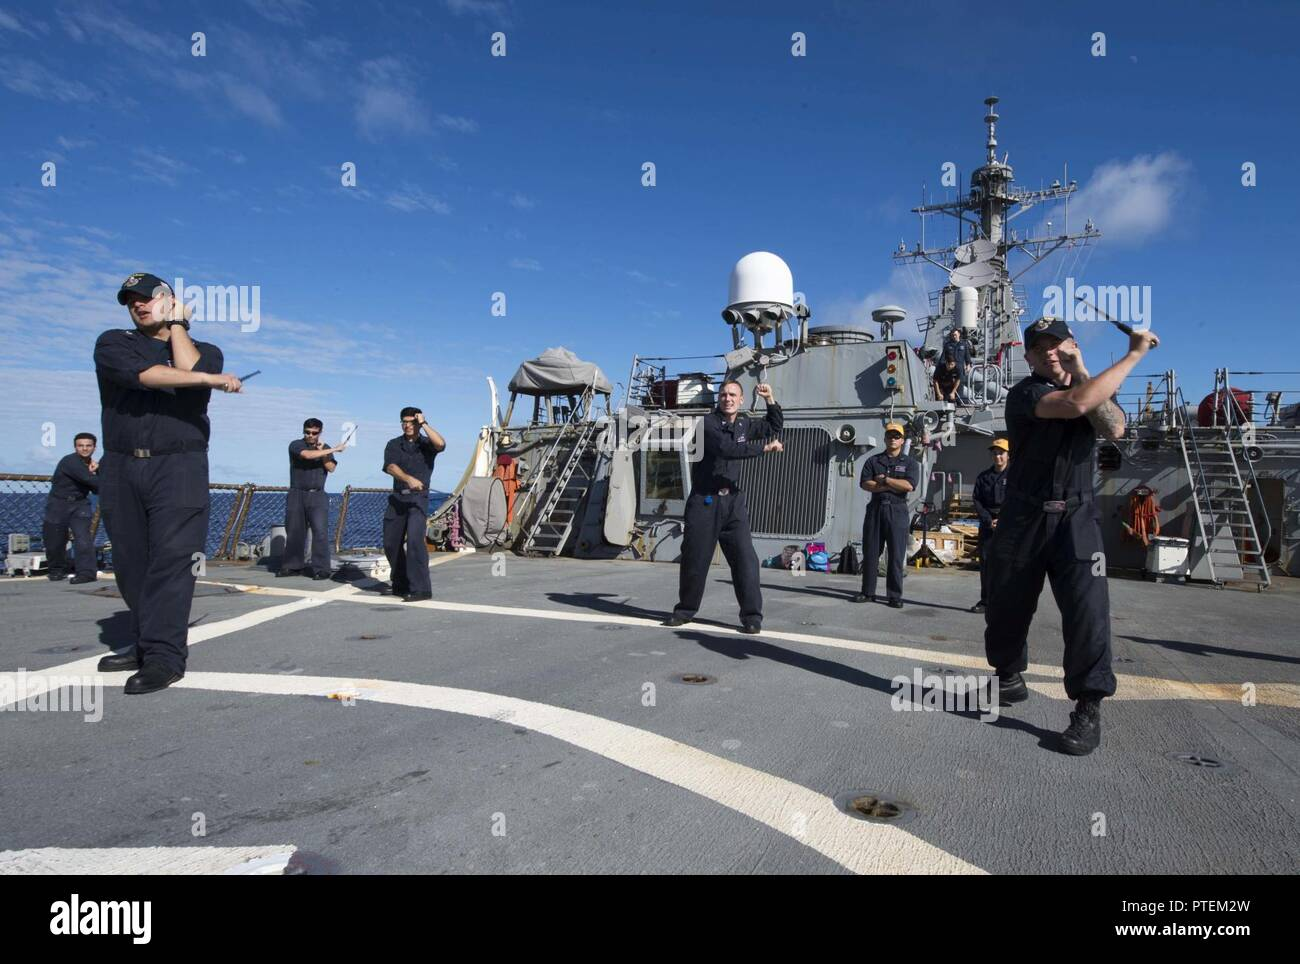 Sailors assigned to the forward-deployed Arleigh Burke-class guided-missile destroyer USS Barry (DDG 52), practice striking with a baton as part of security reactionary forces training. - Stock Image